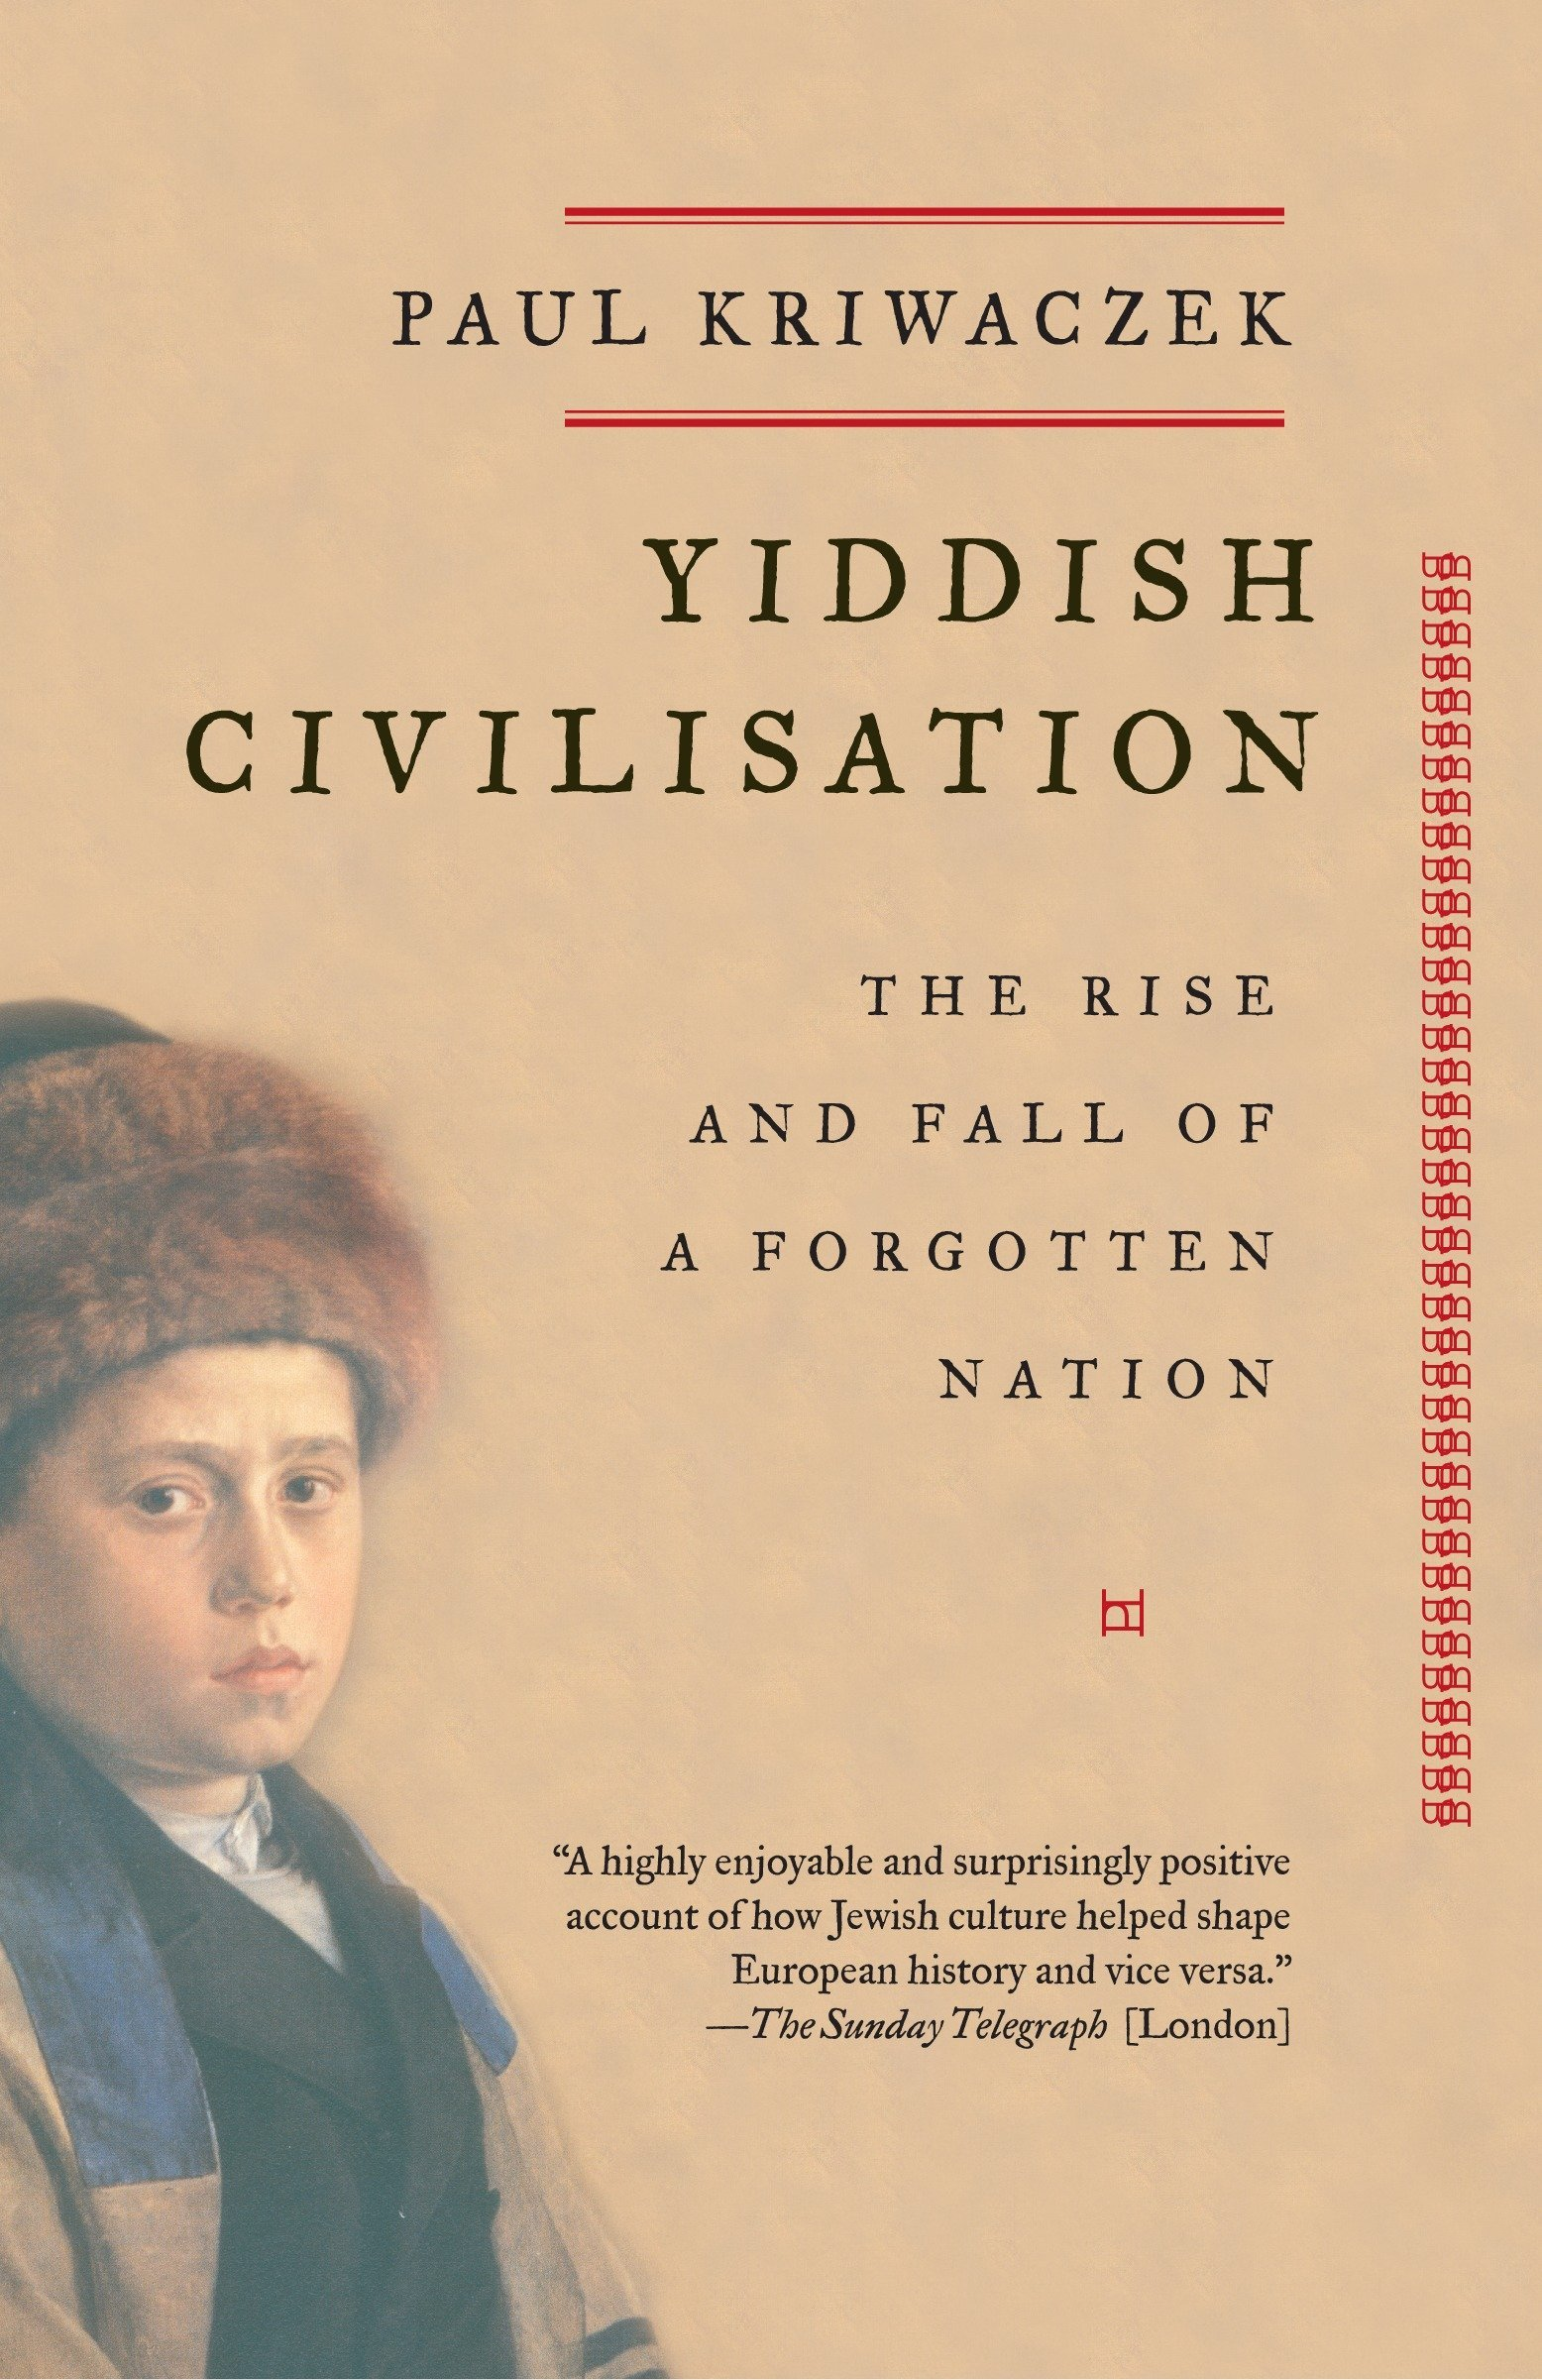 Yiddish Civilisation: The Rise and Fall of a Forgotten Nation Text fb2 book